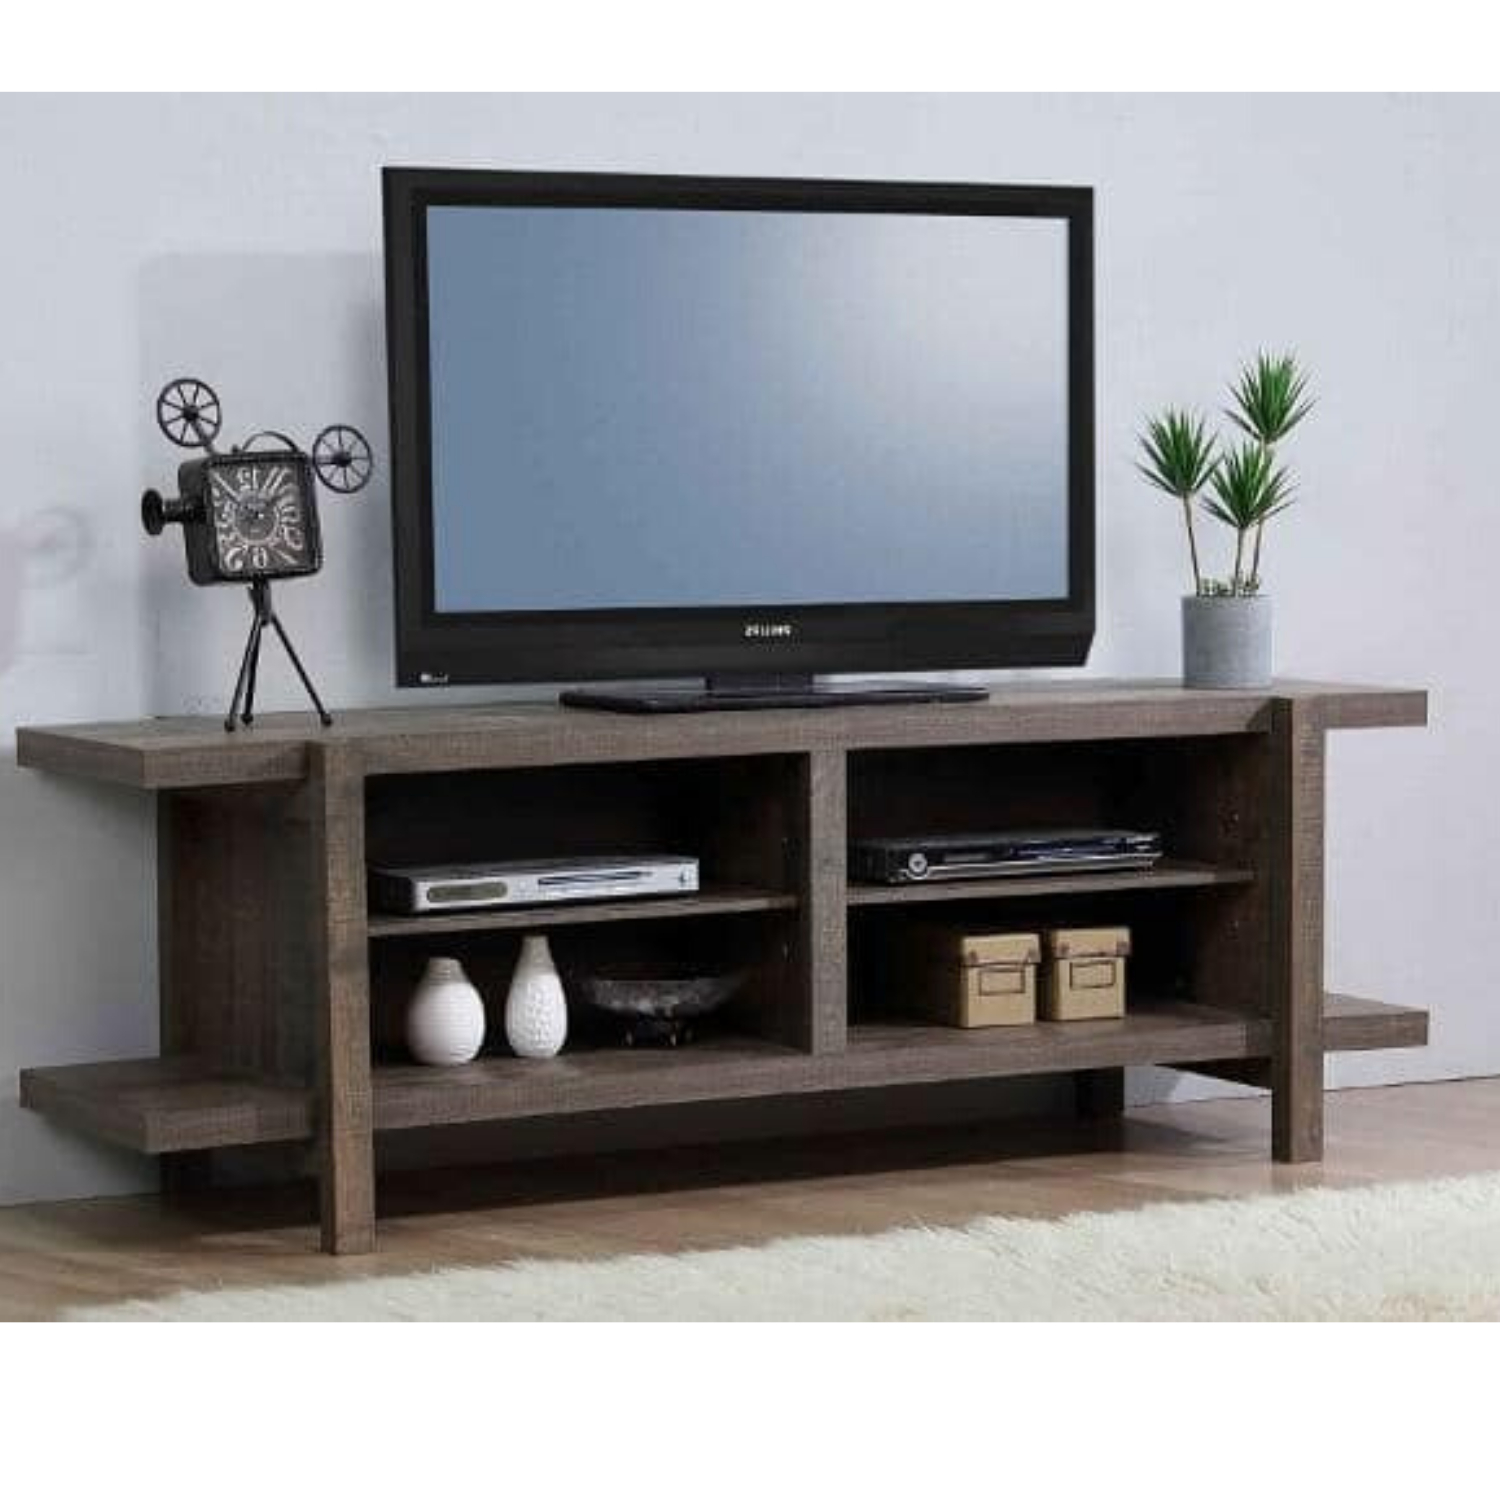 """Tammy 65'' Tv Stand For Tvs Up To 70'', Rustic Mdf Wood Tv Throughout Most Up To Date Tv Stands For Tvs Up To 65"""" (View 3 of 22)"""